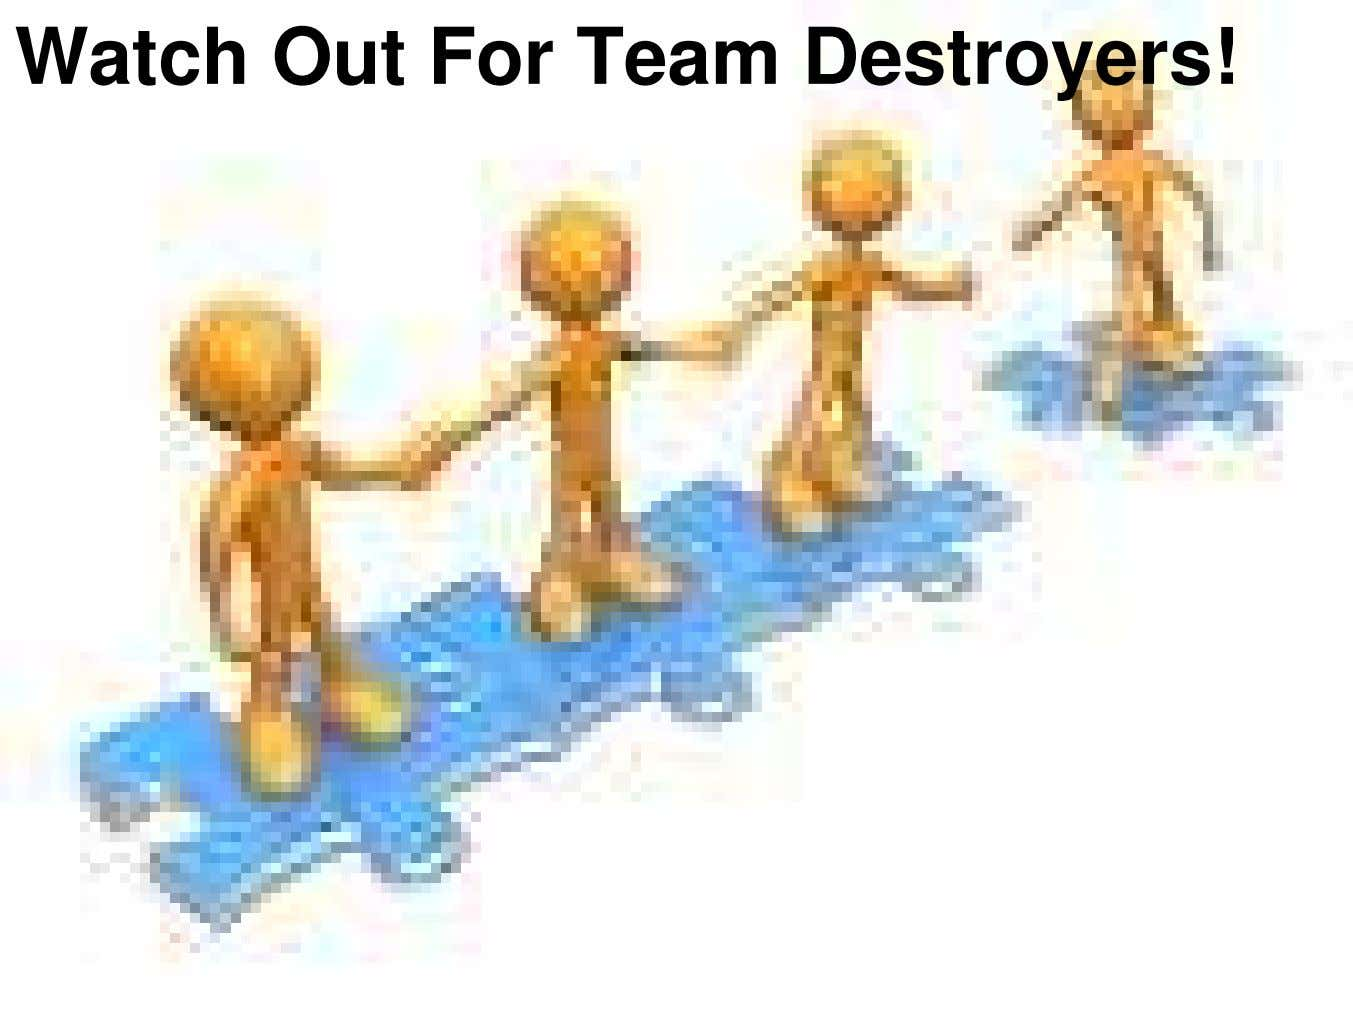 Watch Out For Team Destroyers!